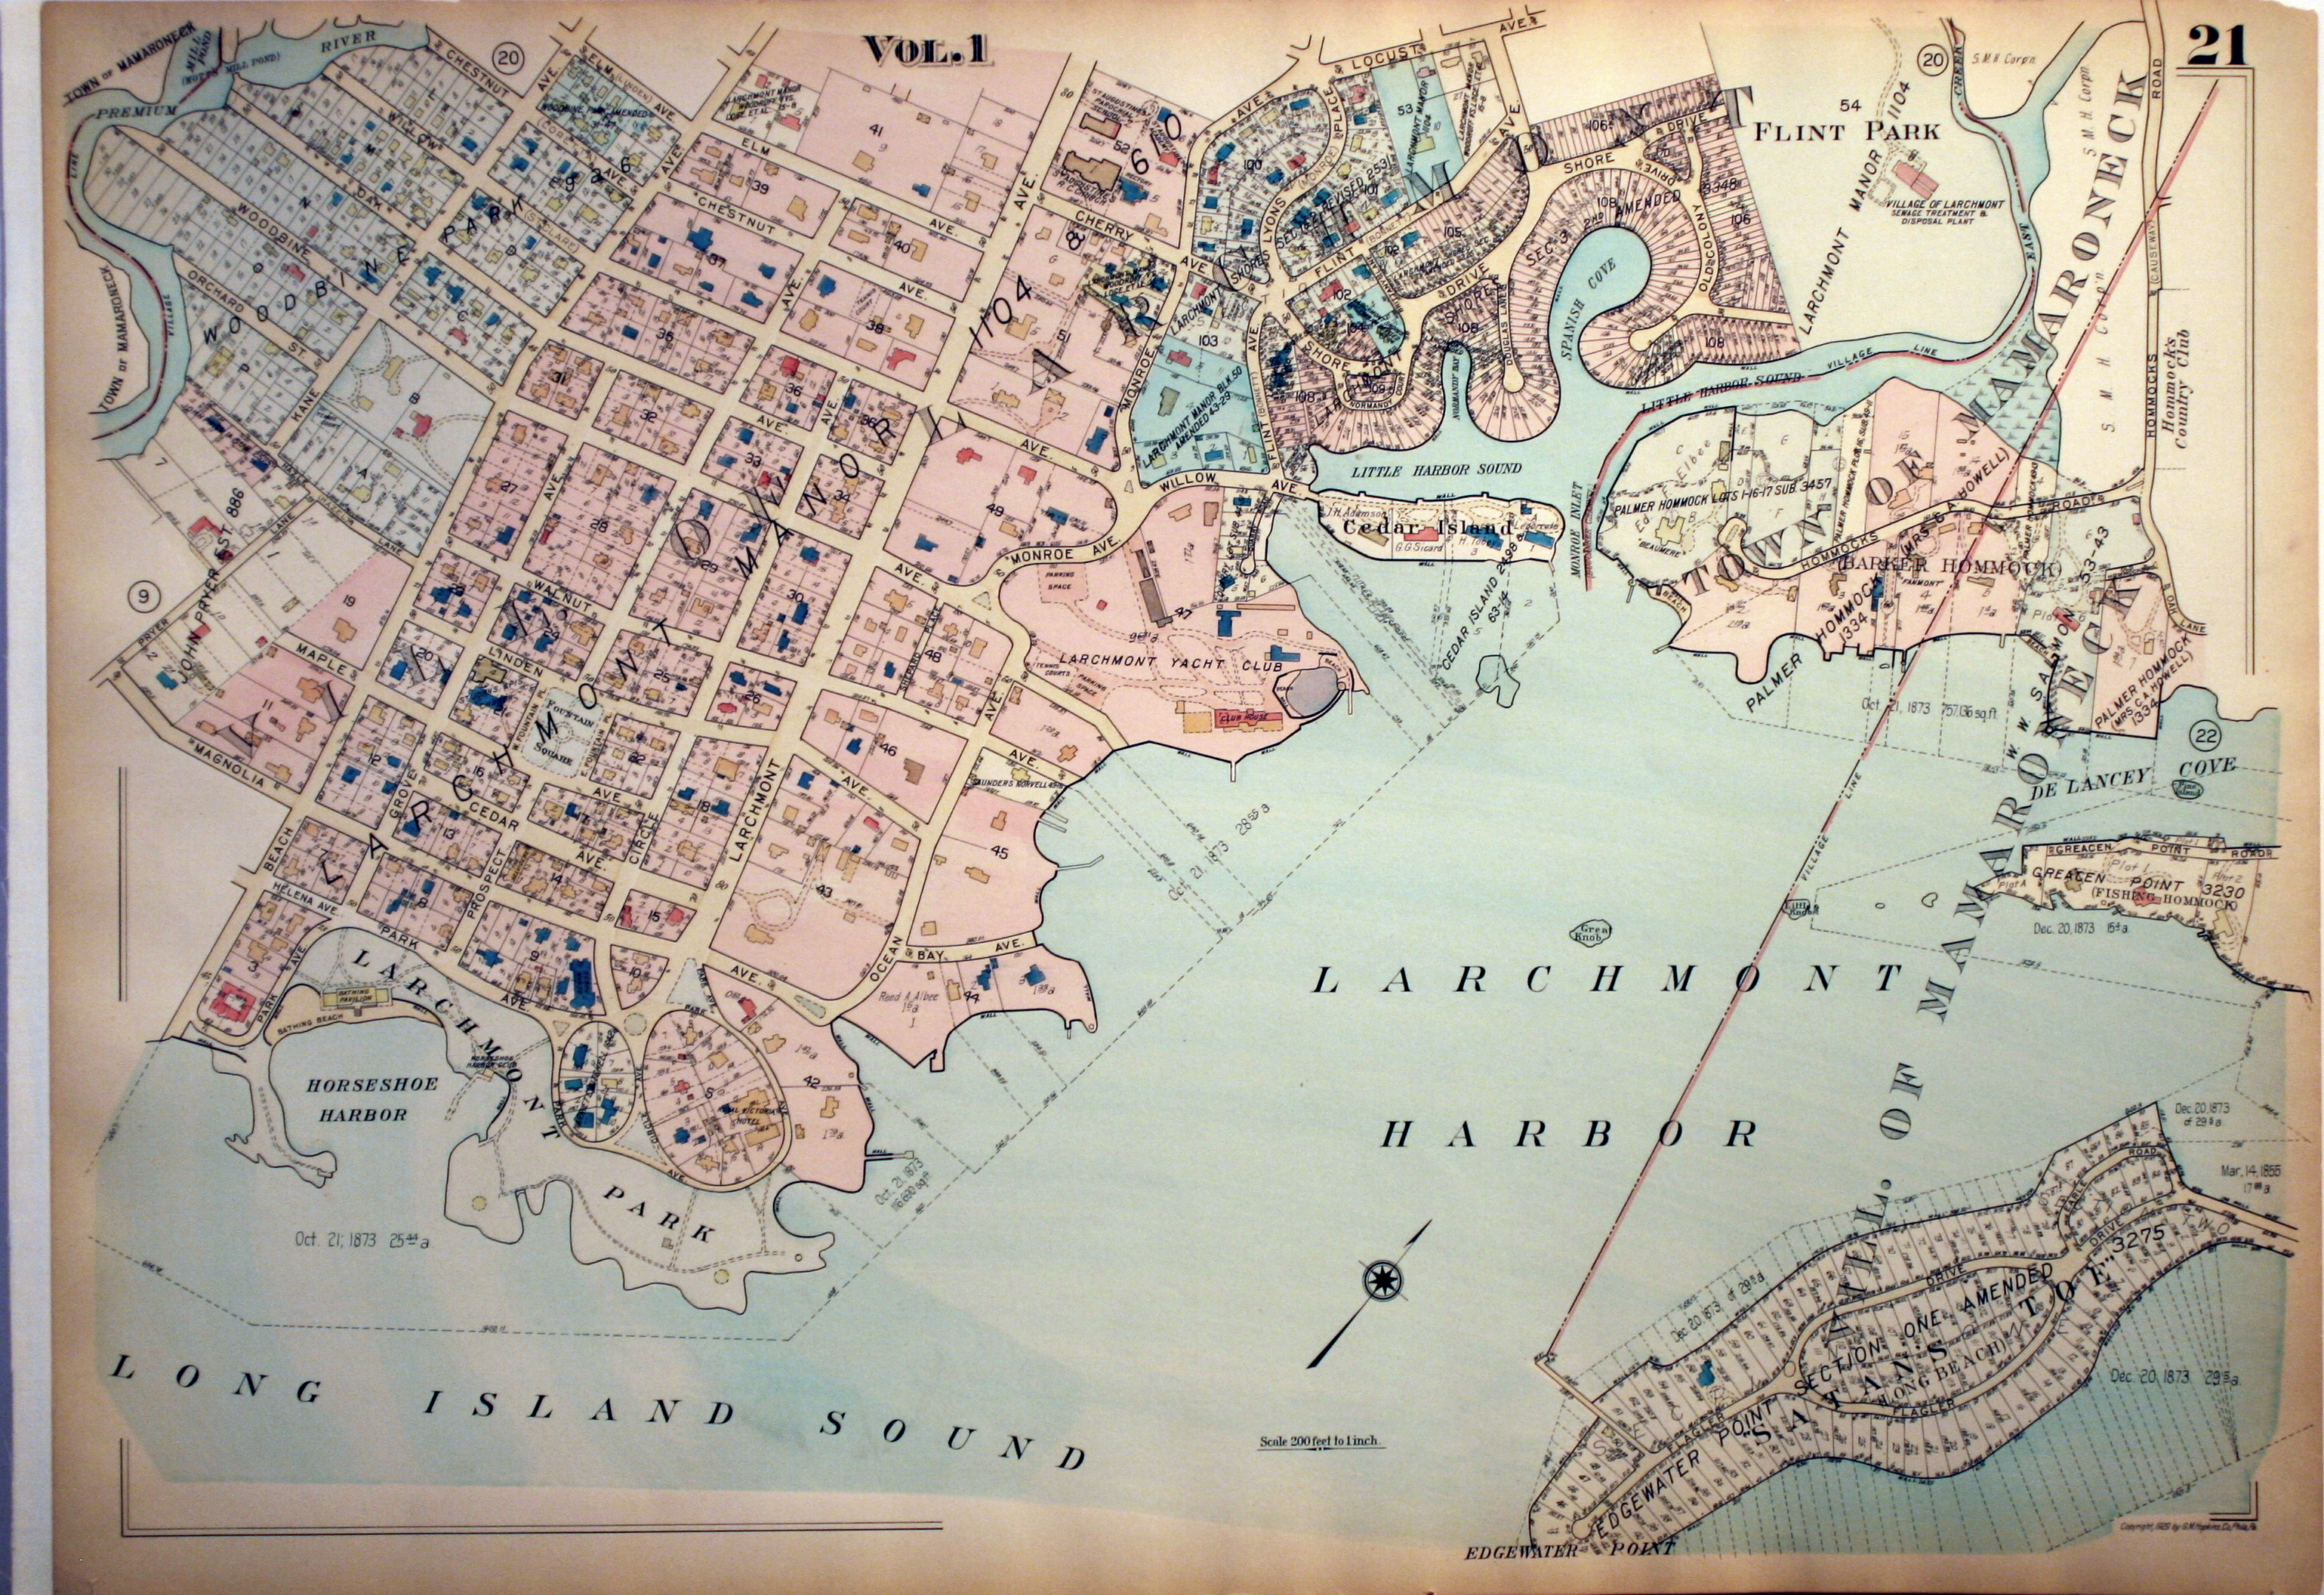 2124 Larchmont Harbor Village of Mamaroneck 1929